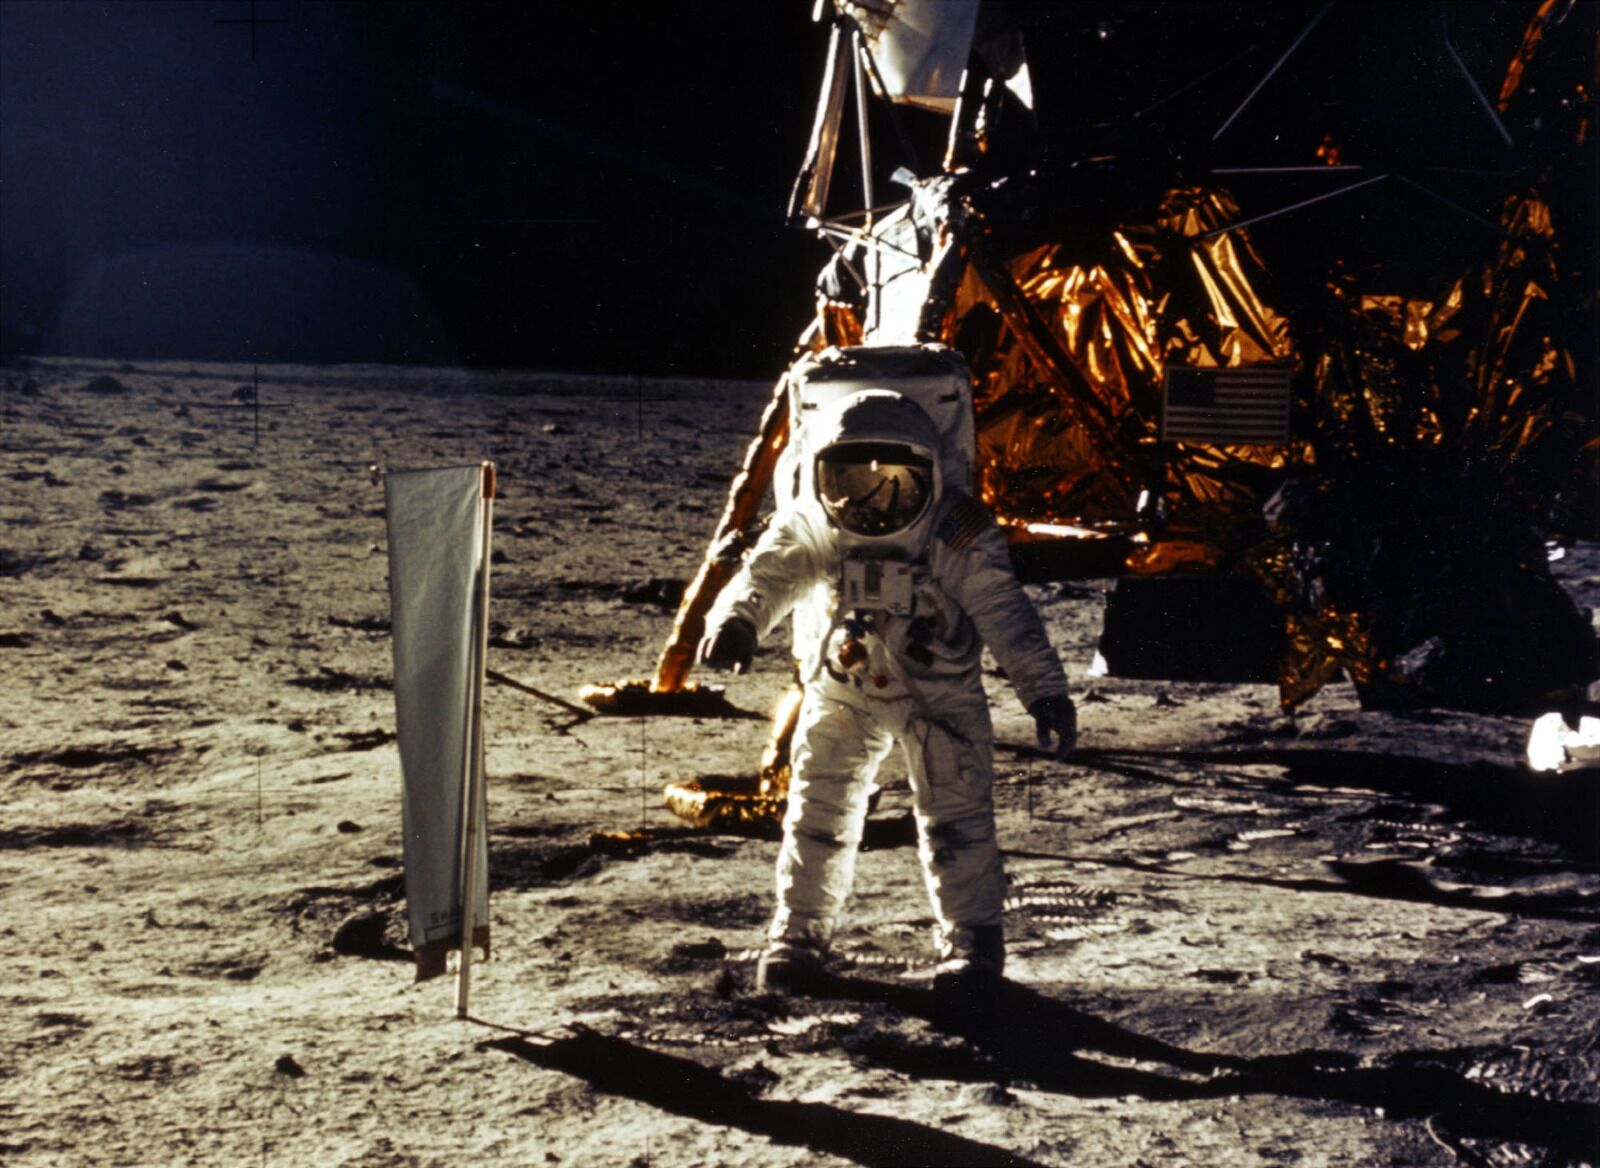 Moon landing at 50: Star Wars and space exploration